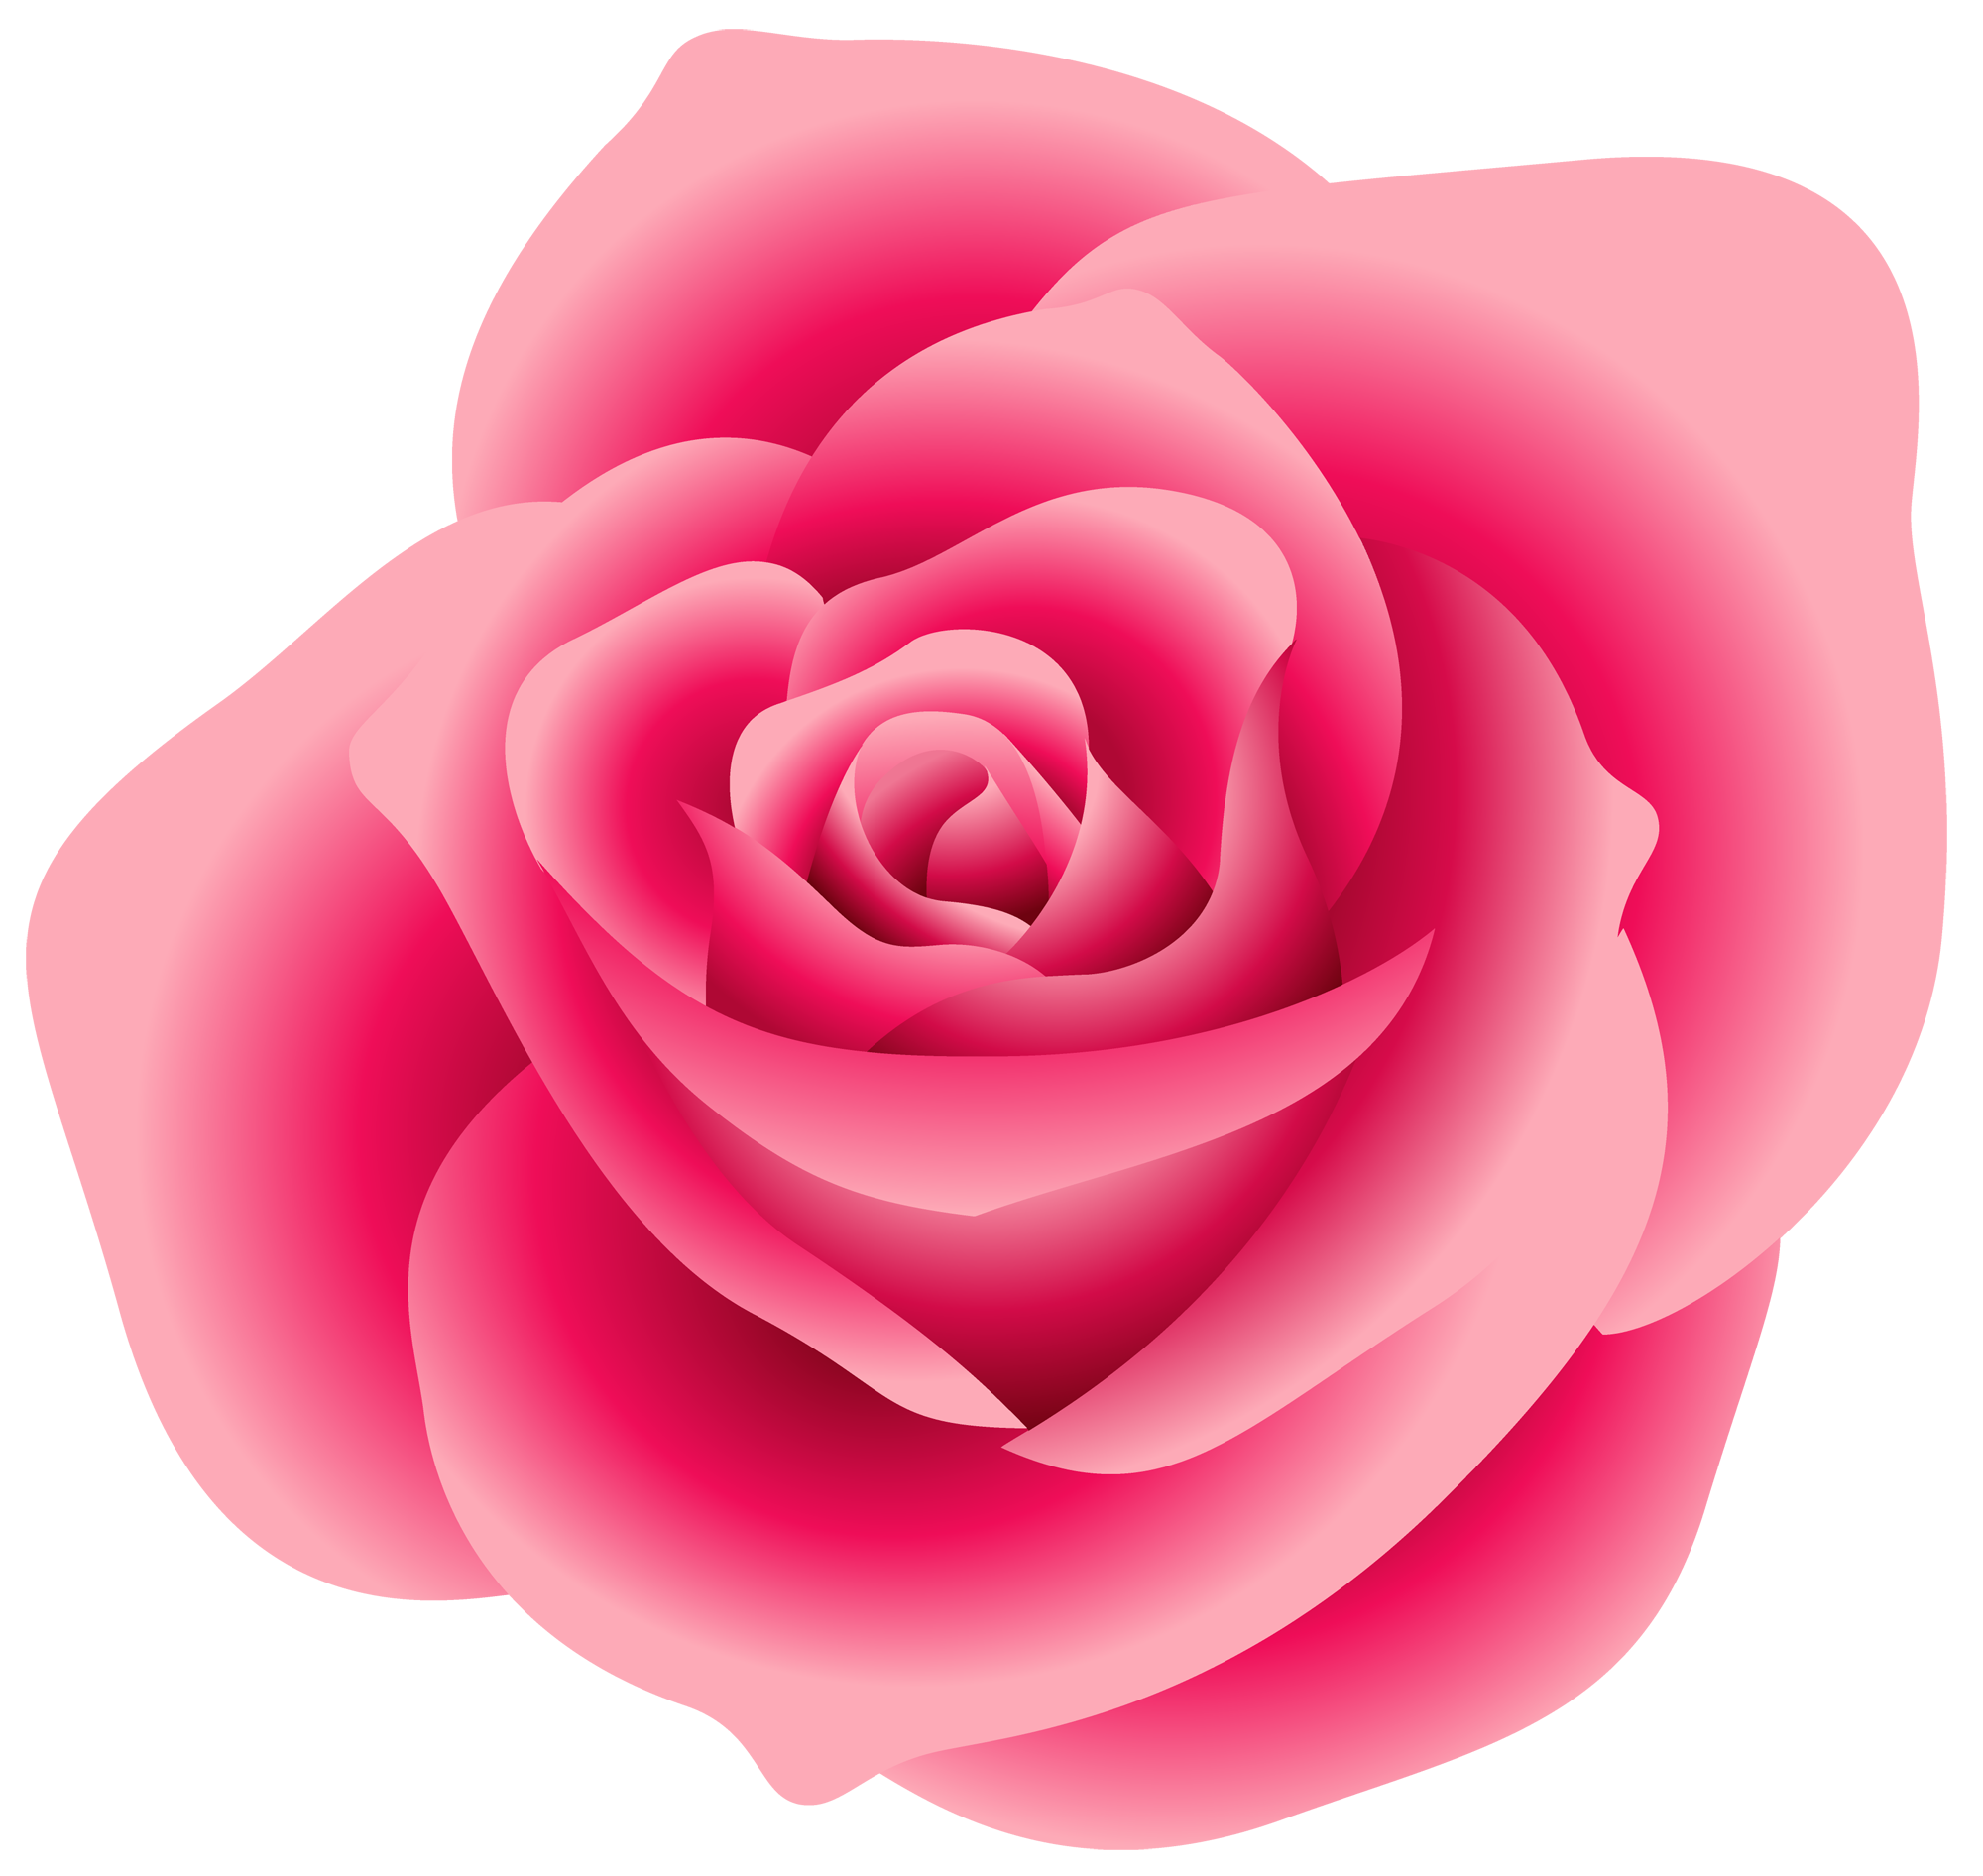 Rose clipart pink rose. Real invitations pinterest roses